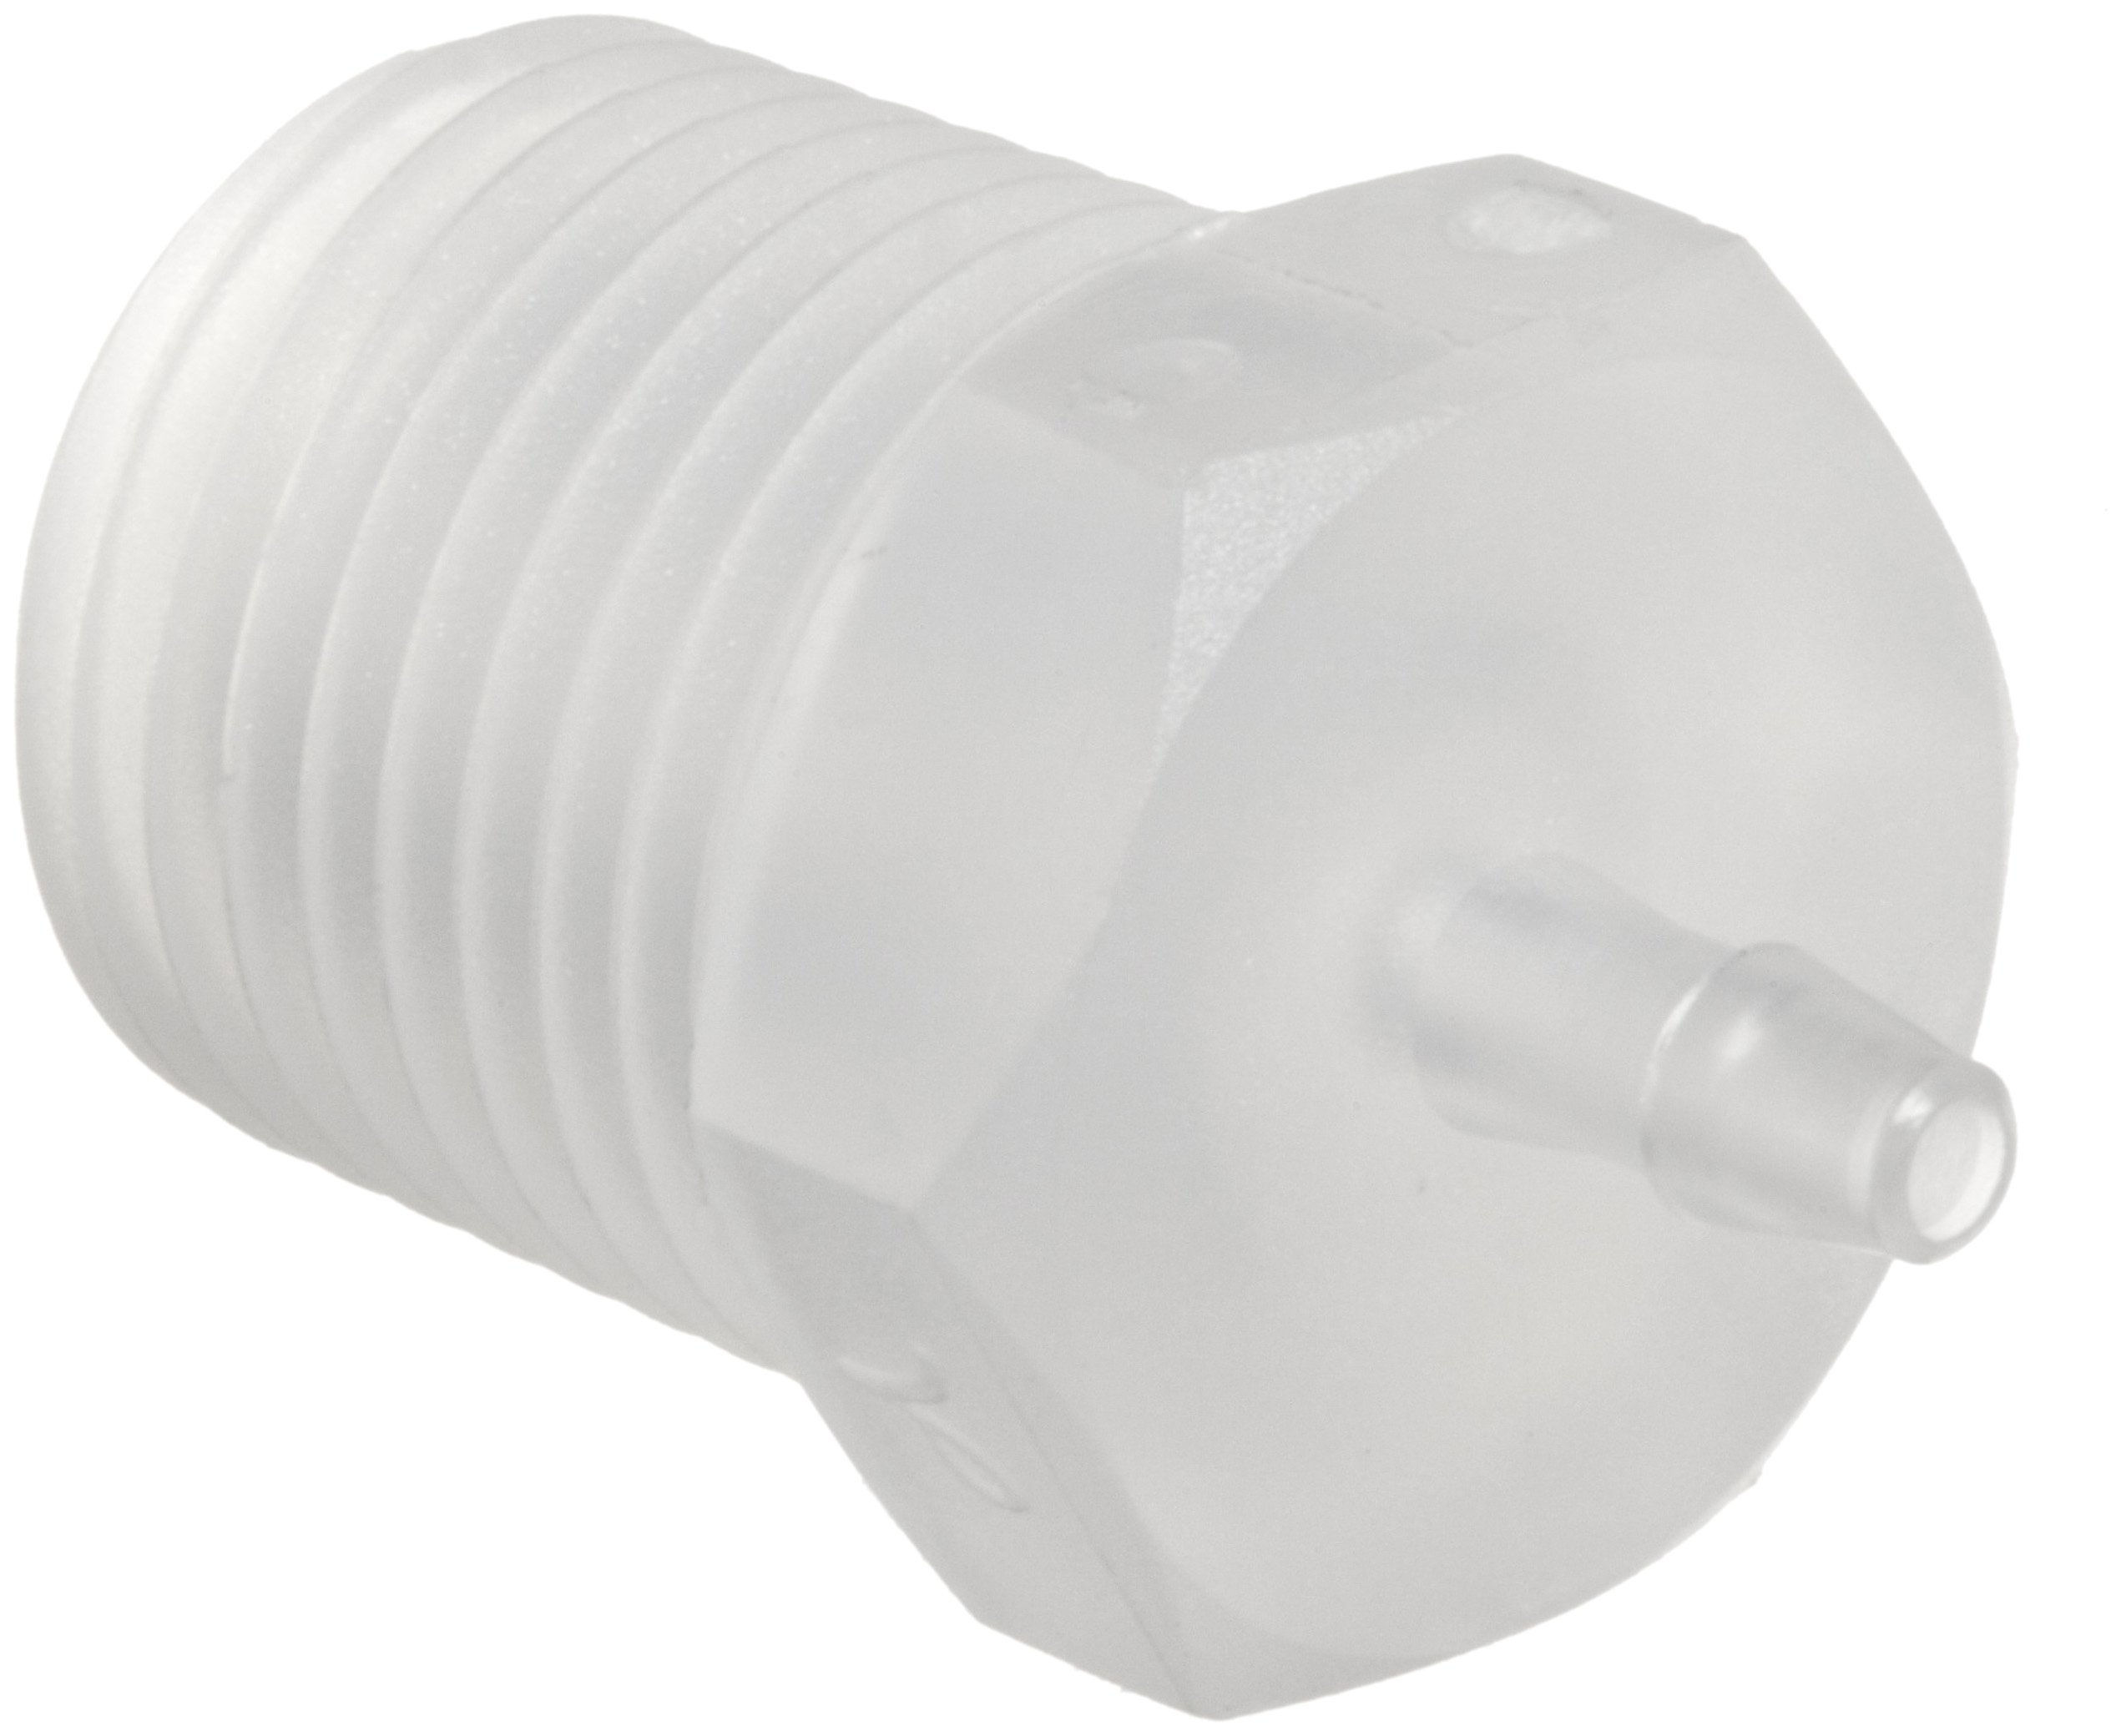 Value Plastics 18210-6 Natural Polypropylene Tube Fitting, 200 Series Barbed Adapter, 1/16'' (1.6 mm) Tube ID x 1/8-27 NPT Male (Pack of 25)